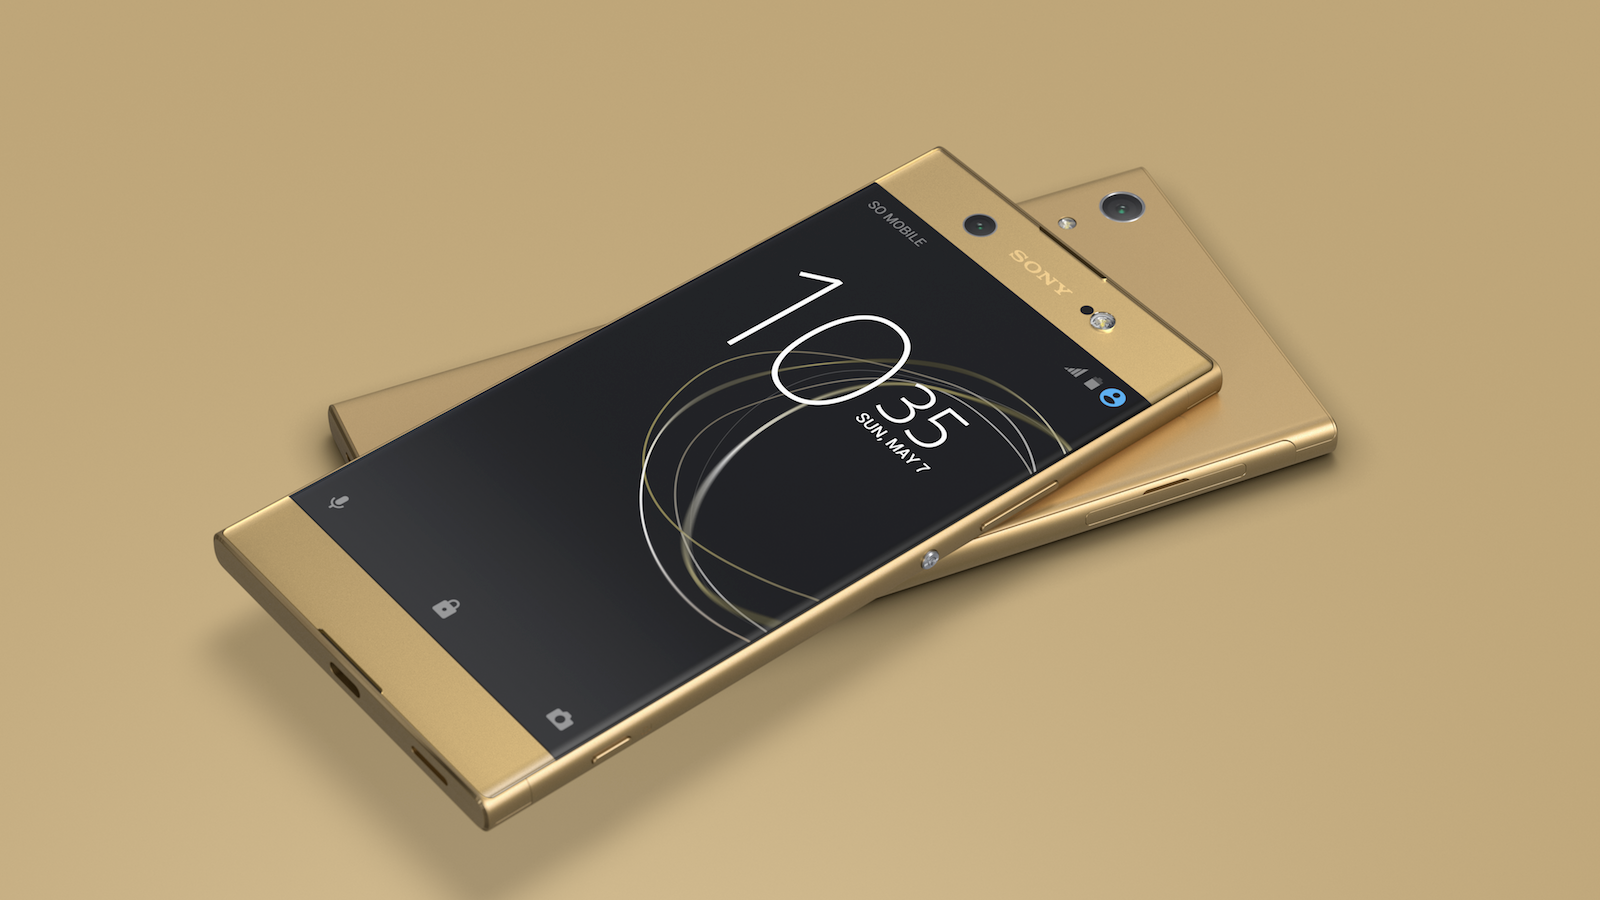 Update: Xperia XA too] Nougat is rolling out to the Sony Xperia XA Ultra